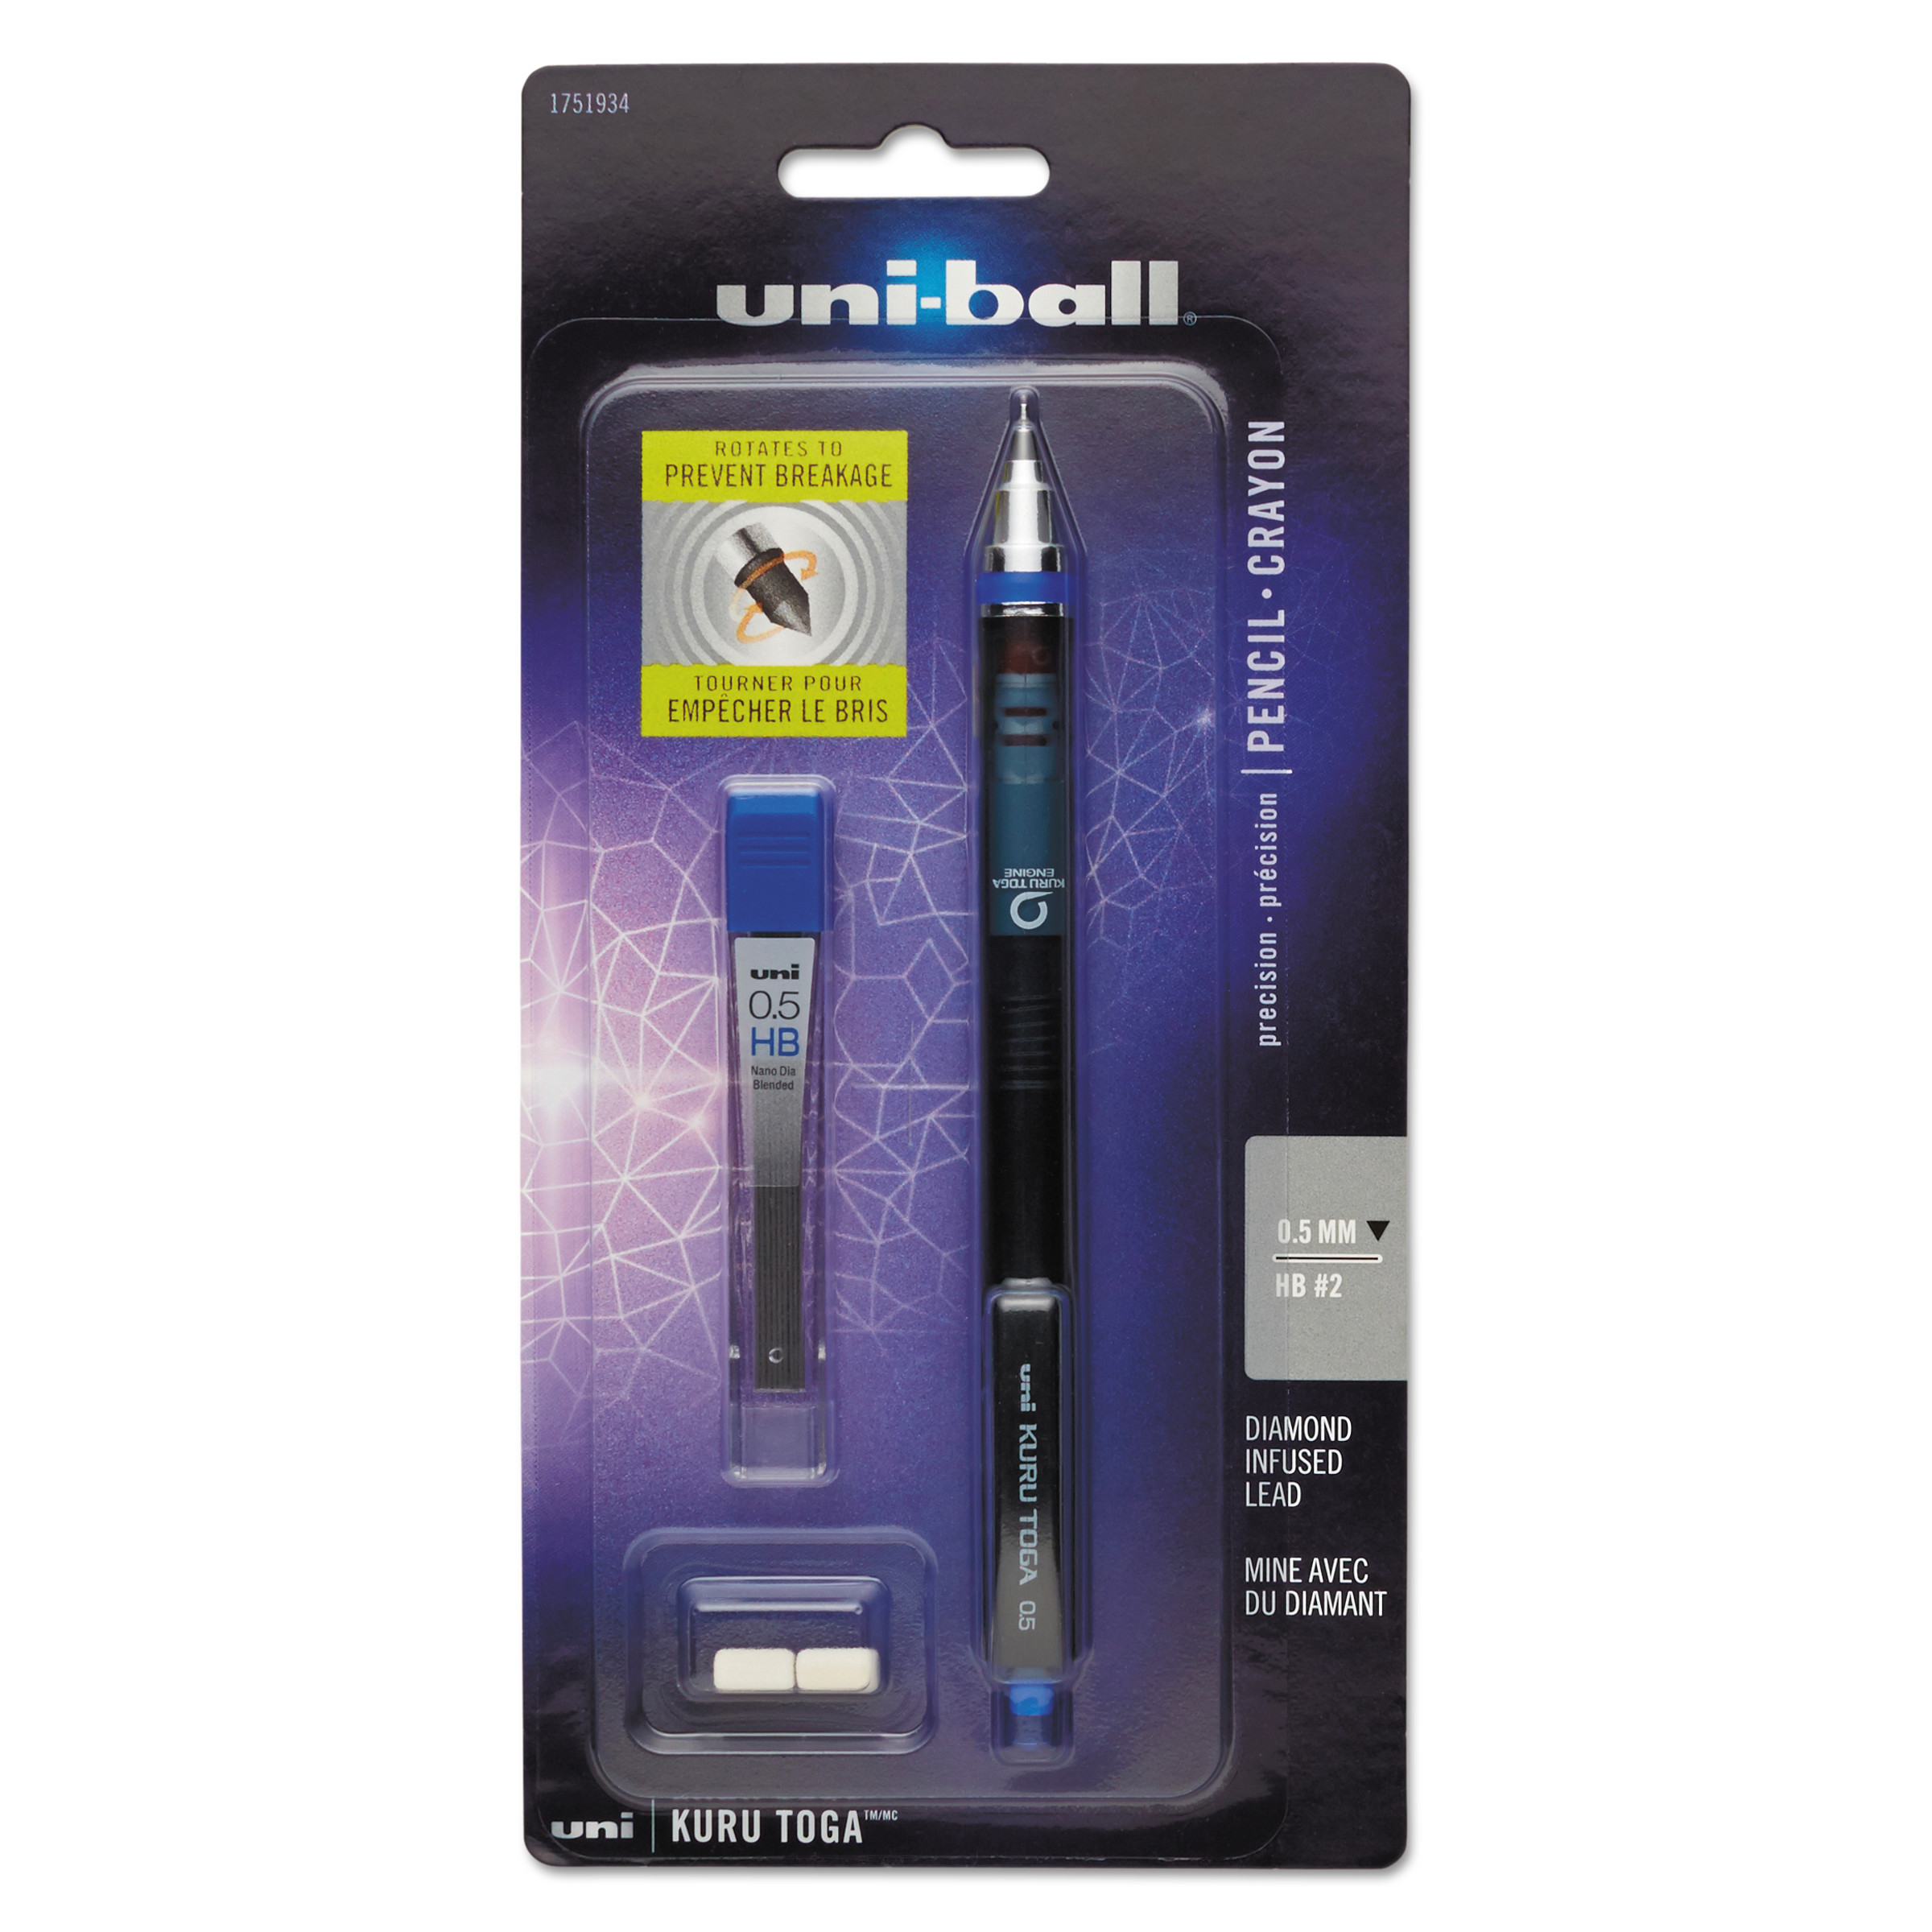 Uni-ball Kurutoga Mechanical Pencil + Erasers and Lead, Fine Point 0.5 mm, #2 HB, Black, 1-Count